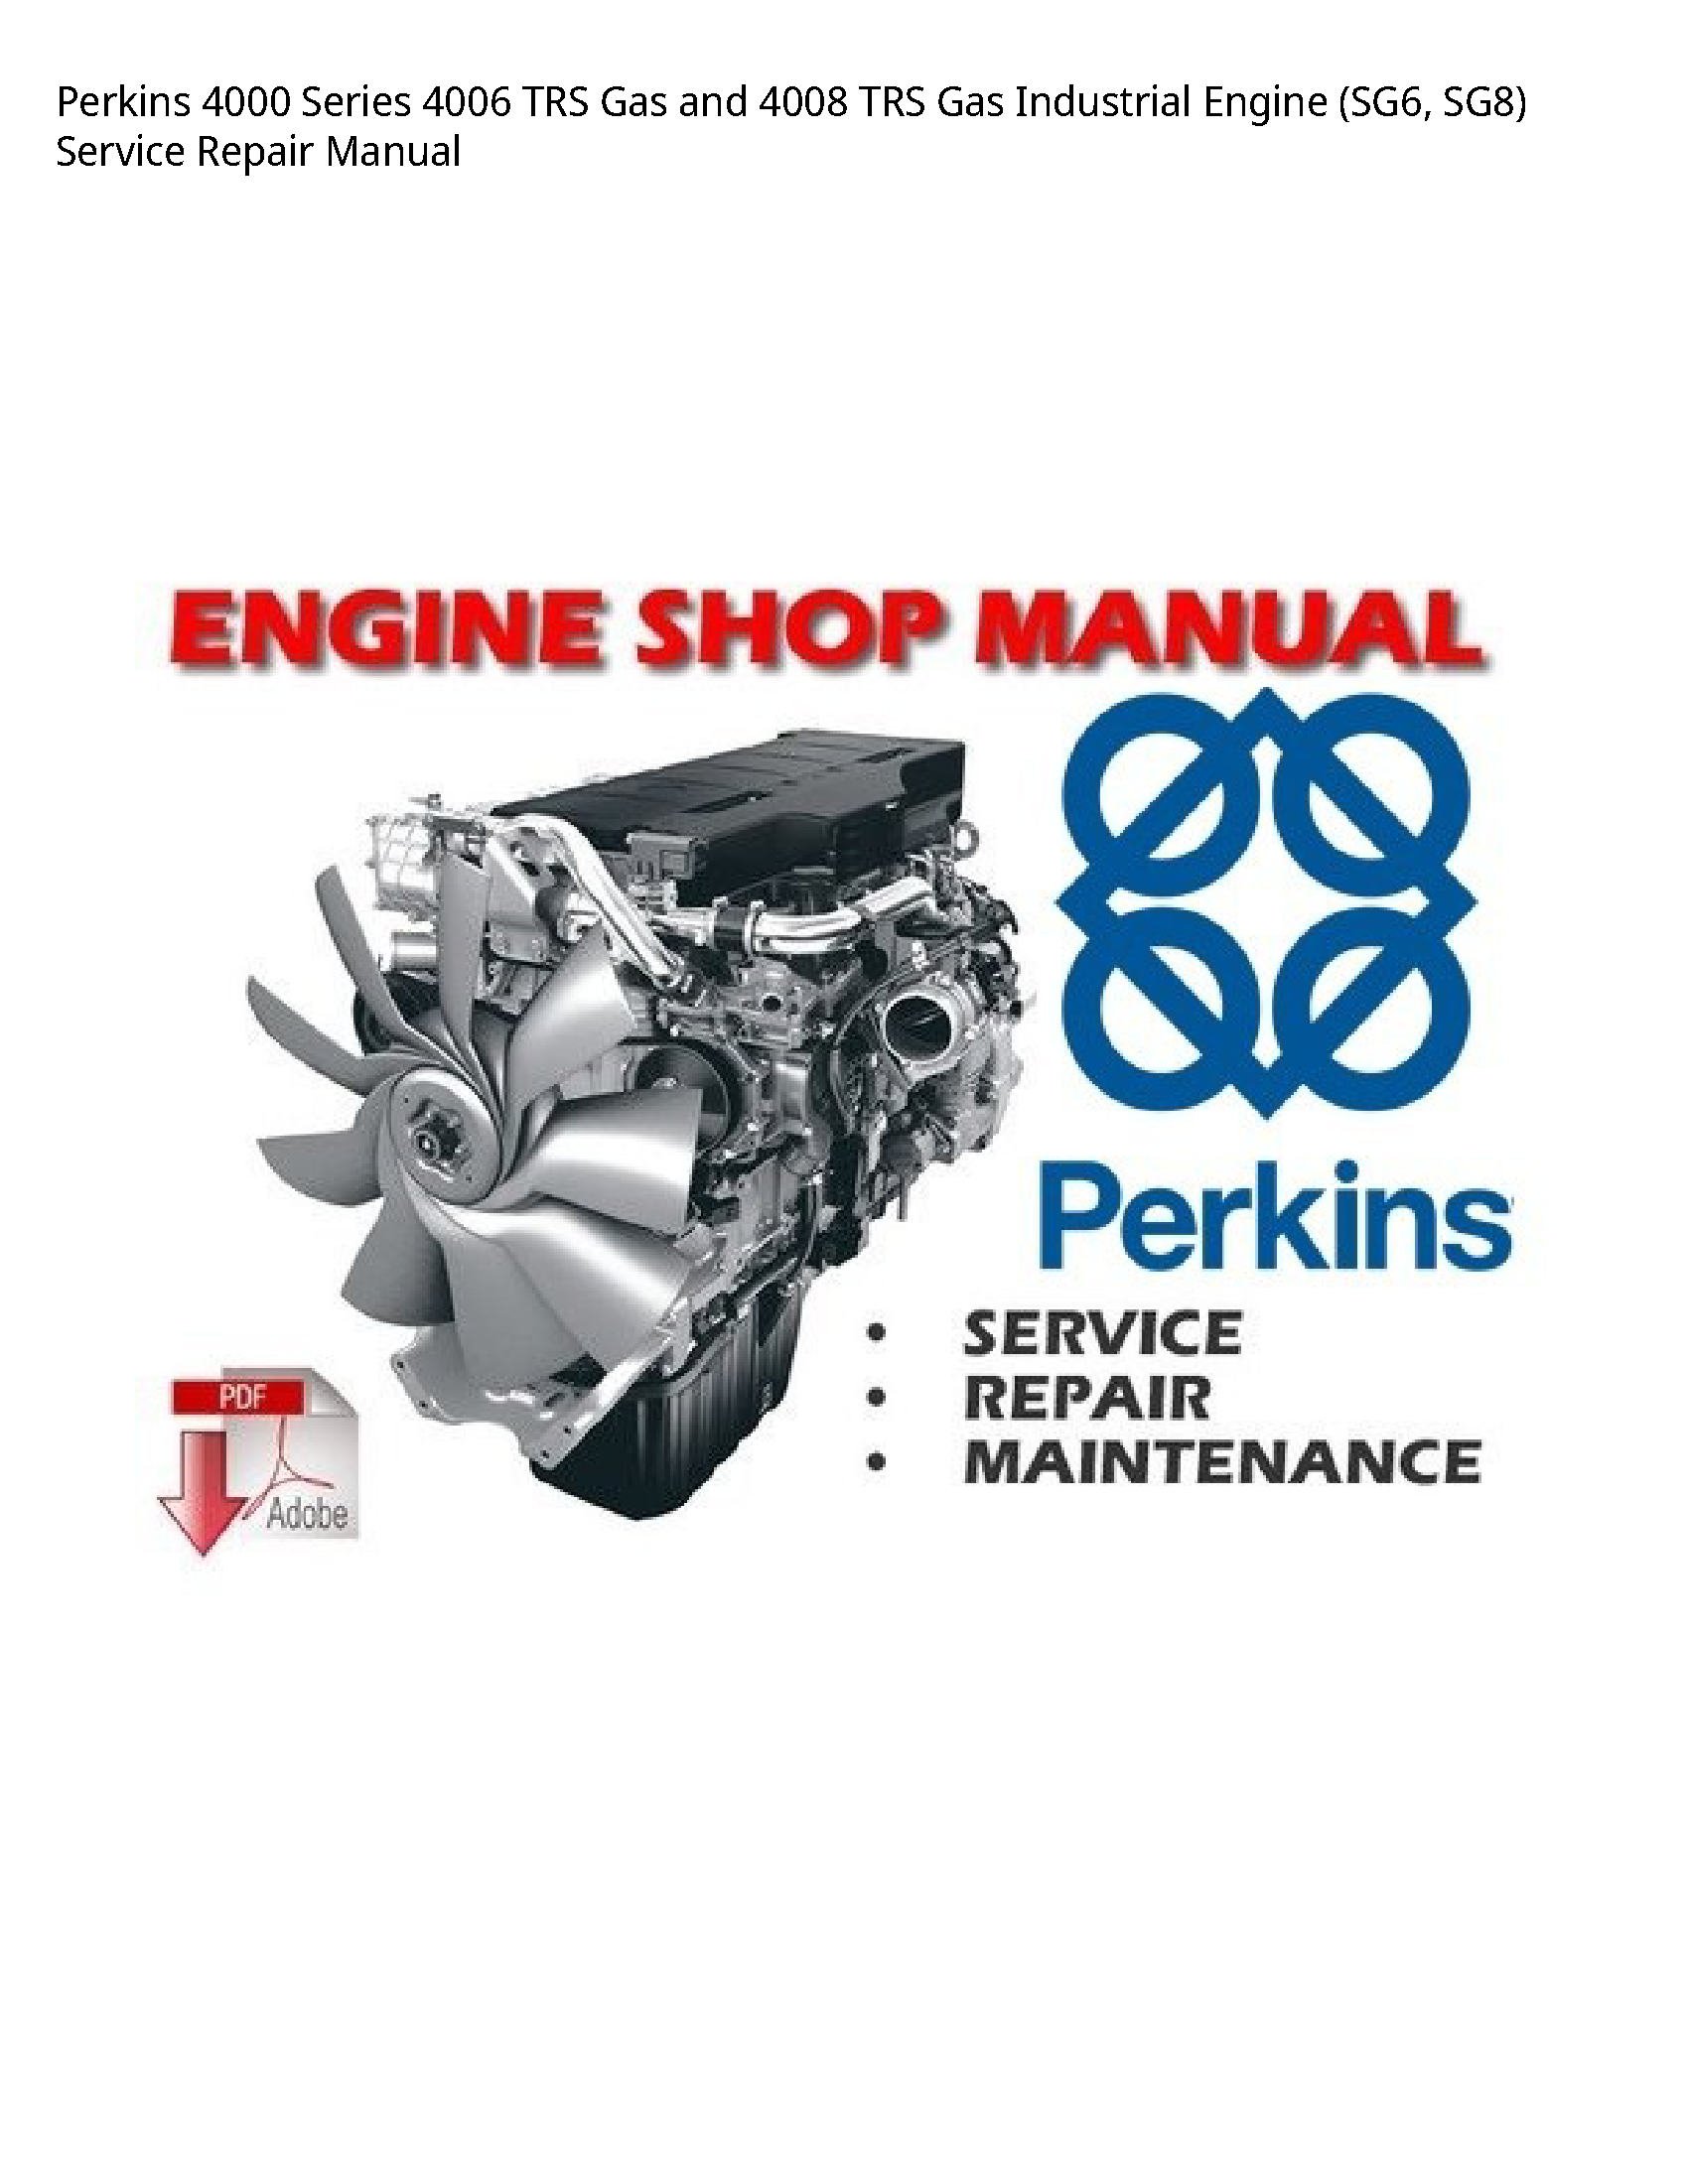 Perkins 4000 Series TRS Gas  TRS Gas Industrial Engine manual